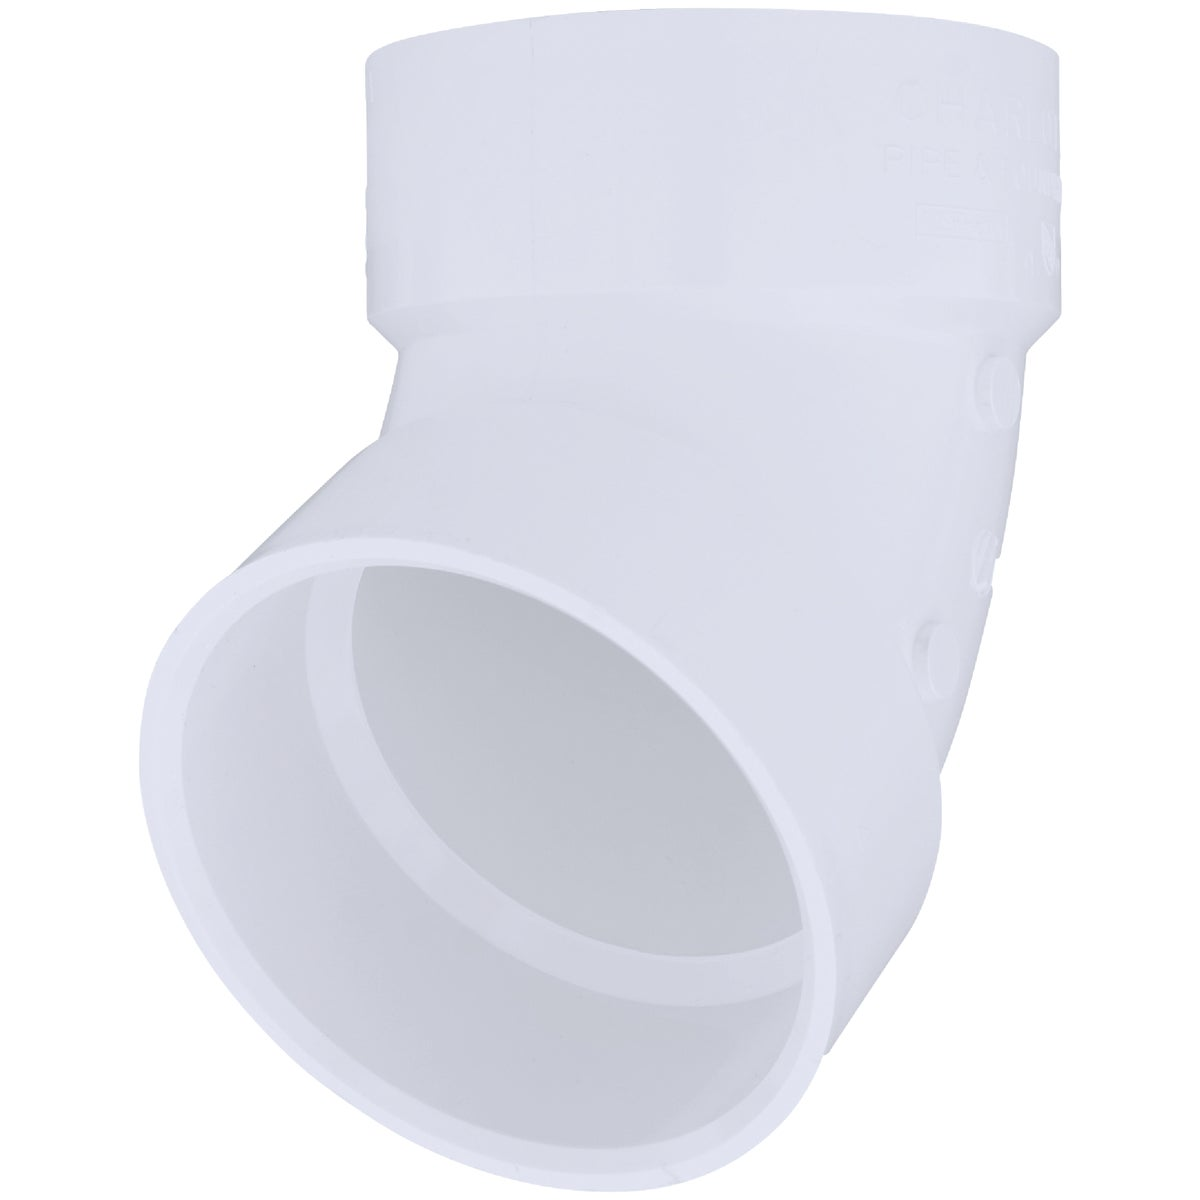 "4"" 60D PVC-DWV ELBOW - 70940 by Genova Inc  Pvc Dwv"